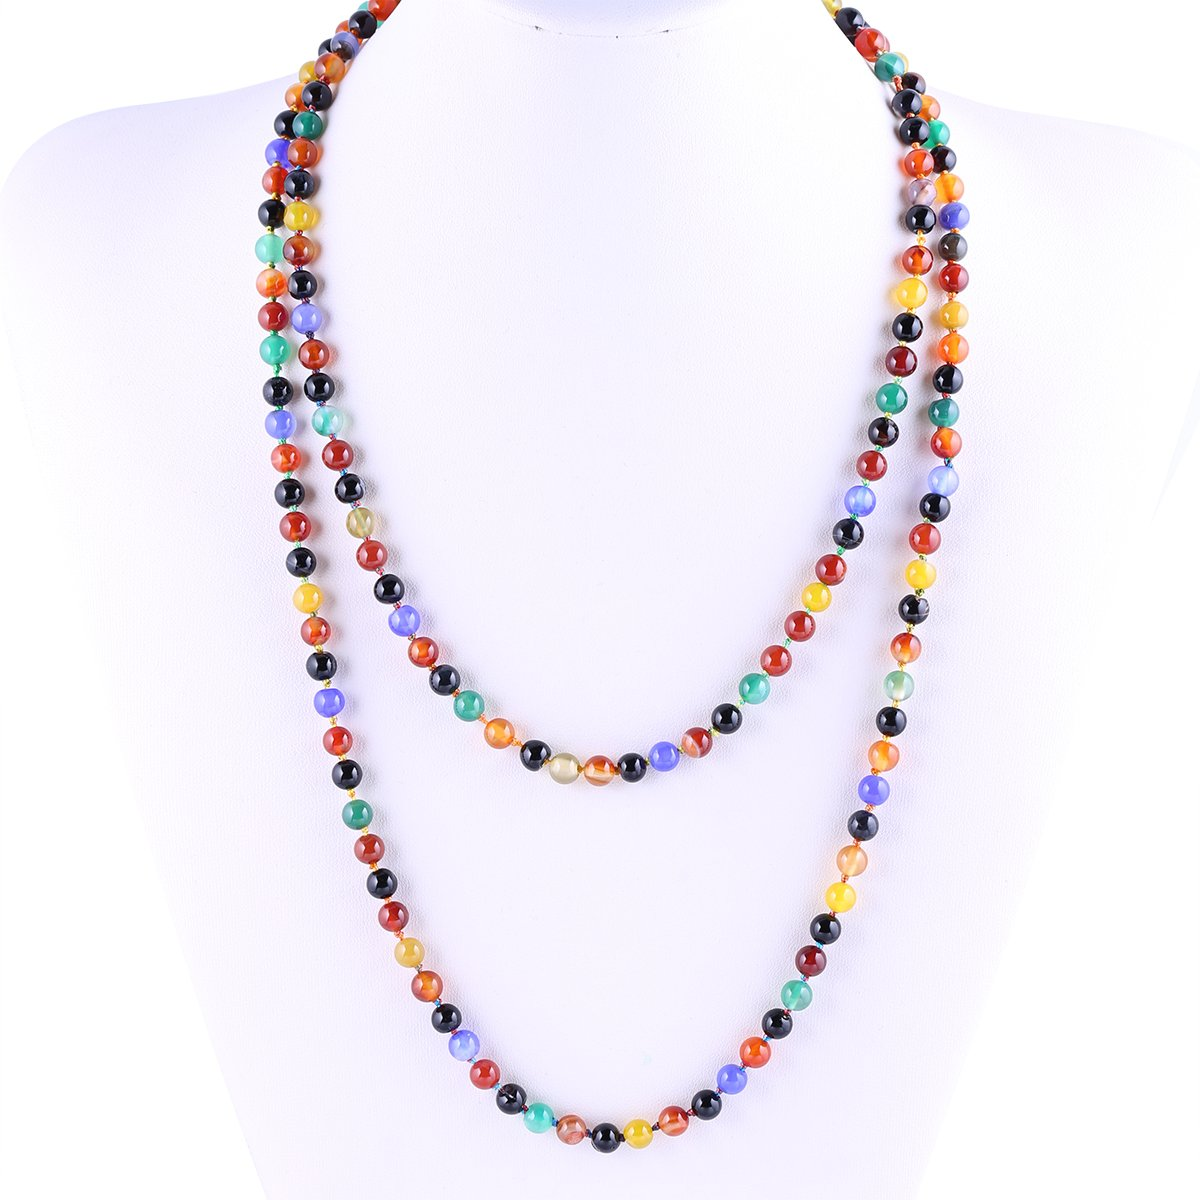 6mm Agate Beads Necklace Bracelet Multicolor Handmade Strand Long Necklace for Women 47''